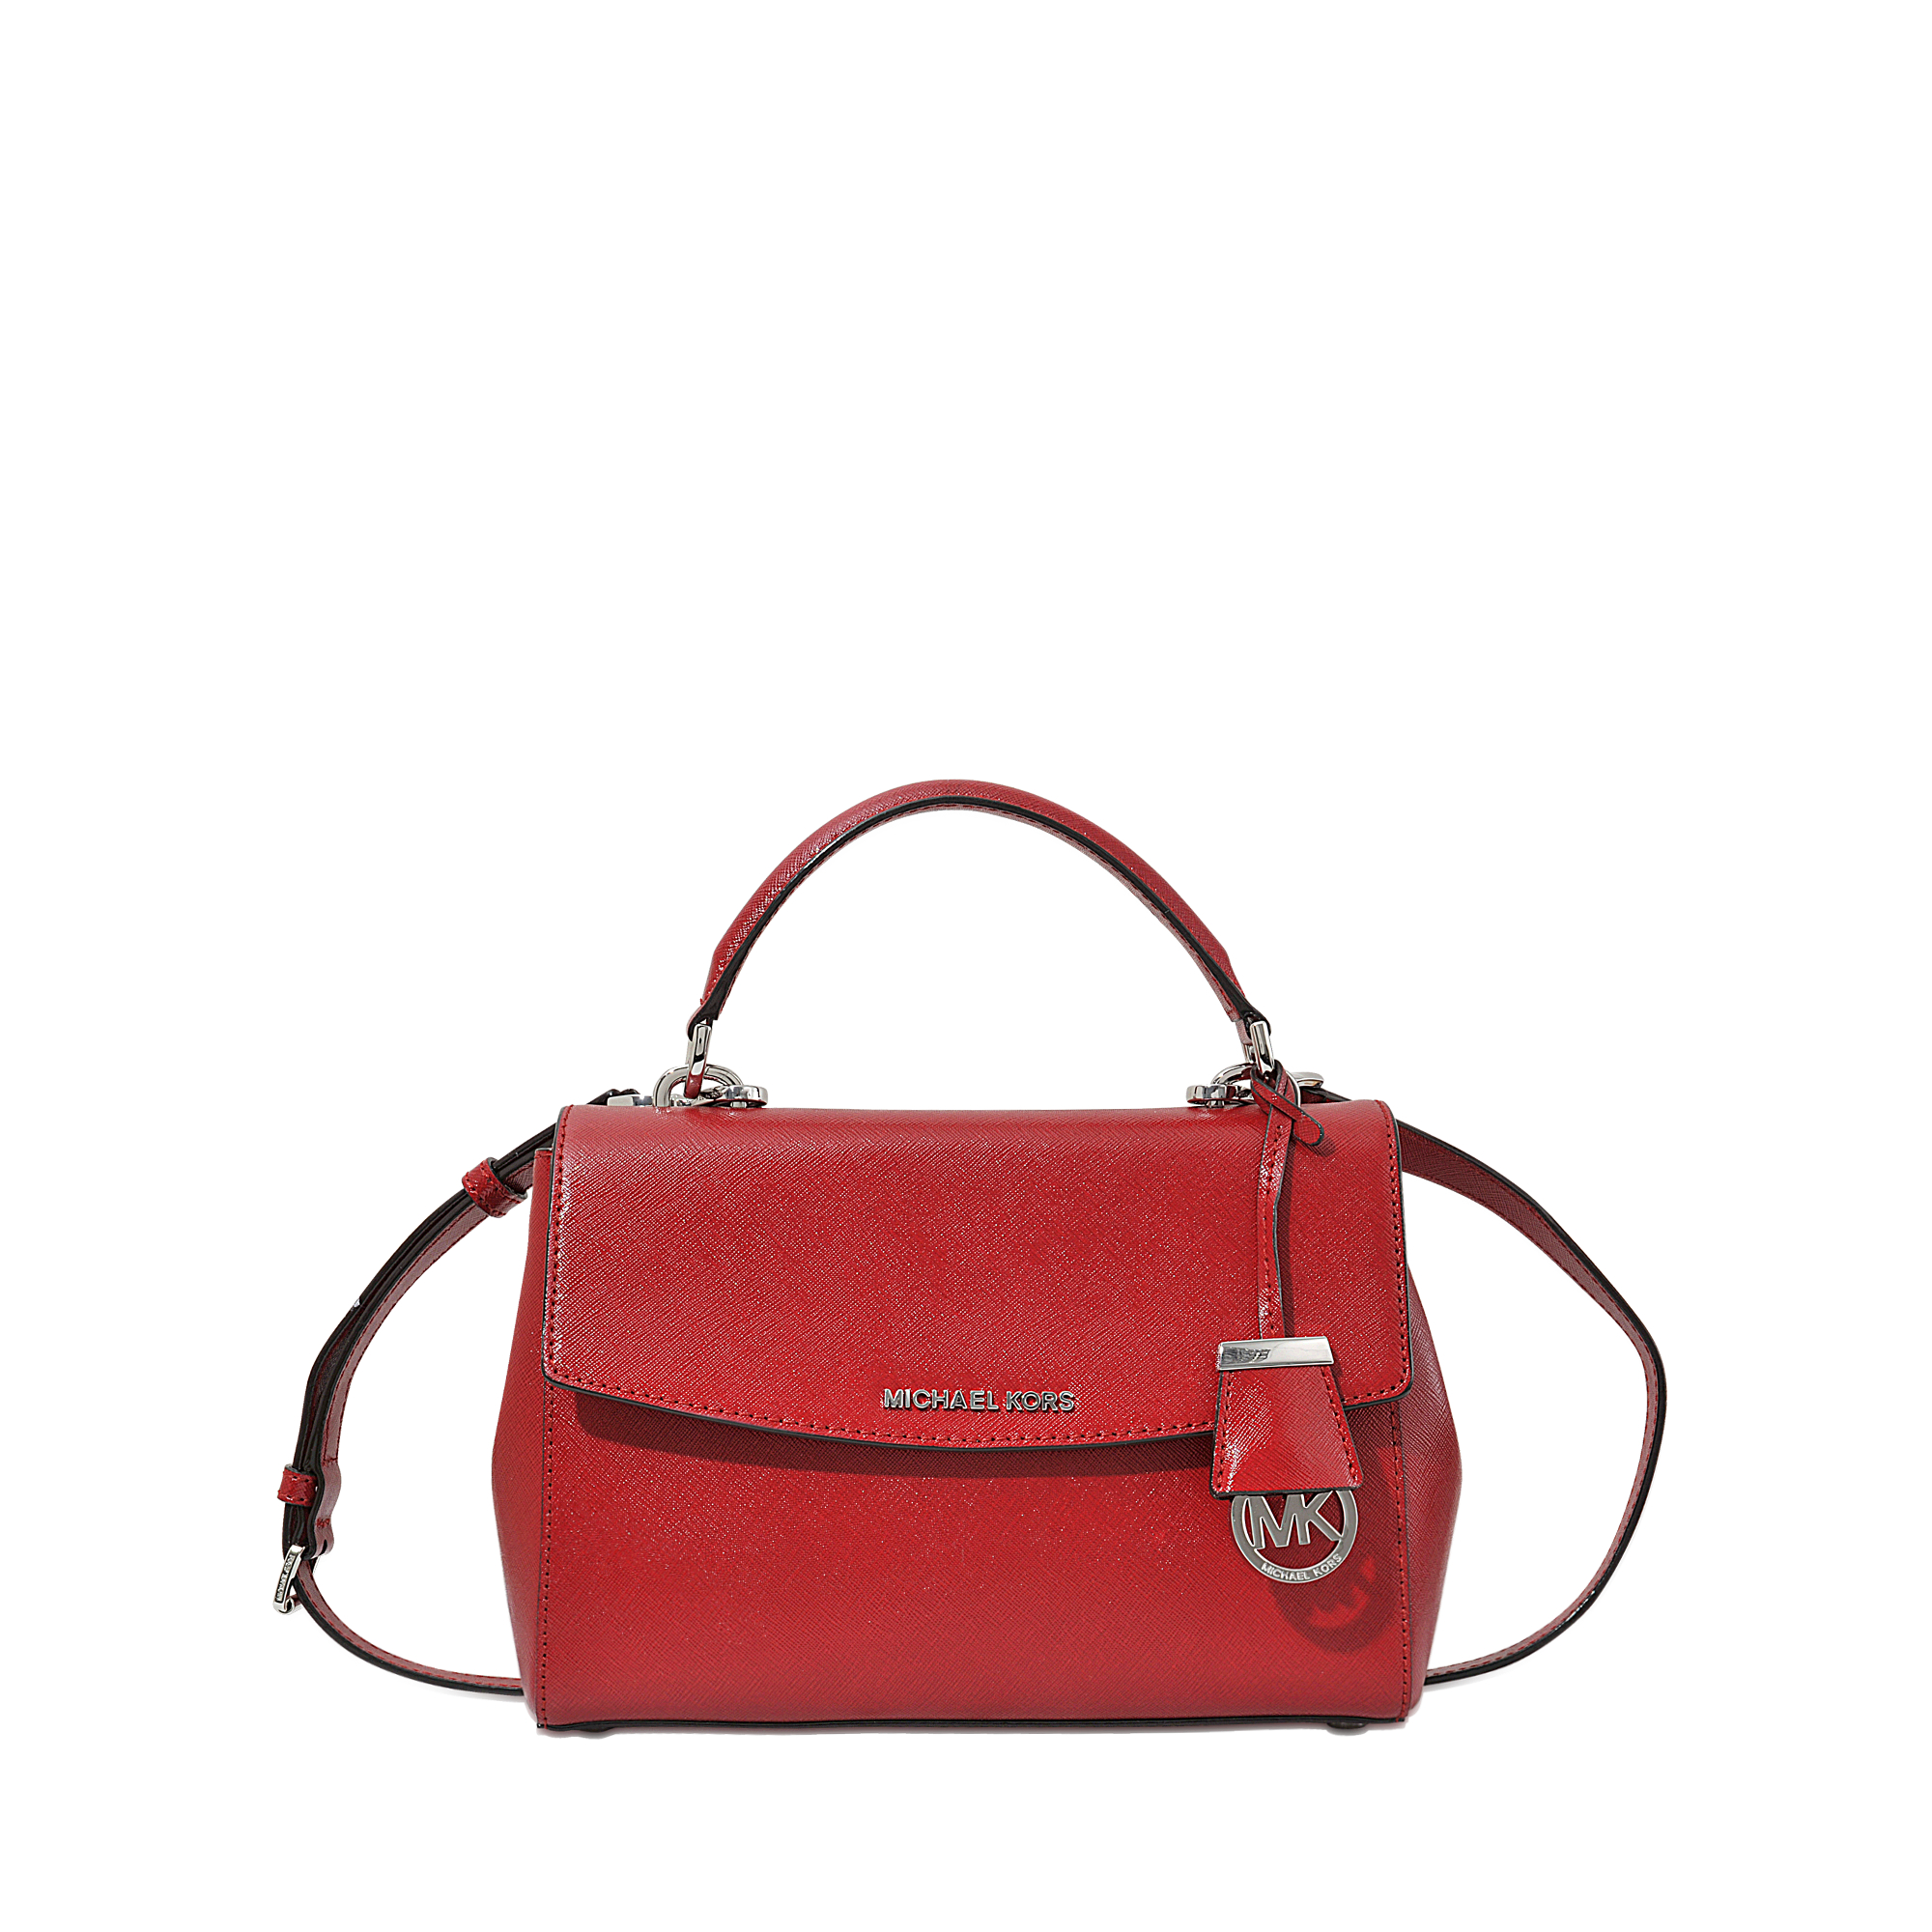 Michael michael kors Ava Small Satchel Bag in Red | Lyst